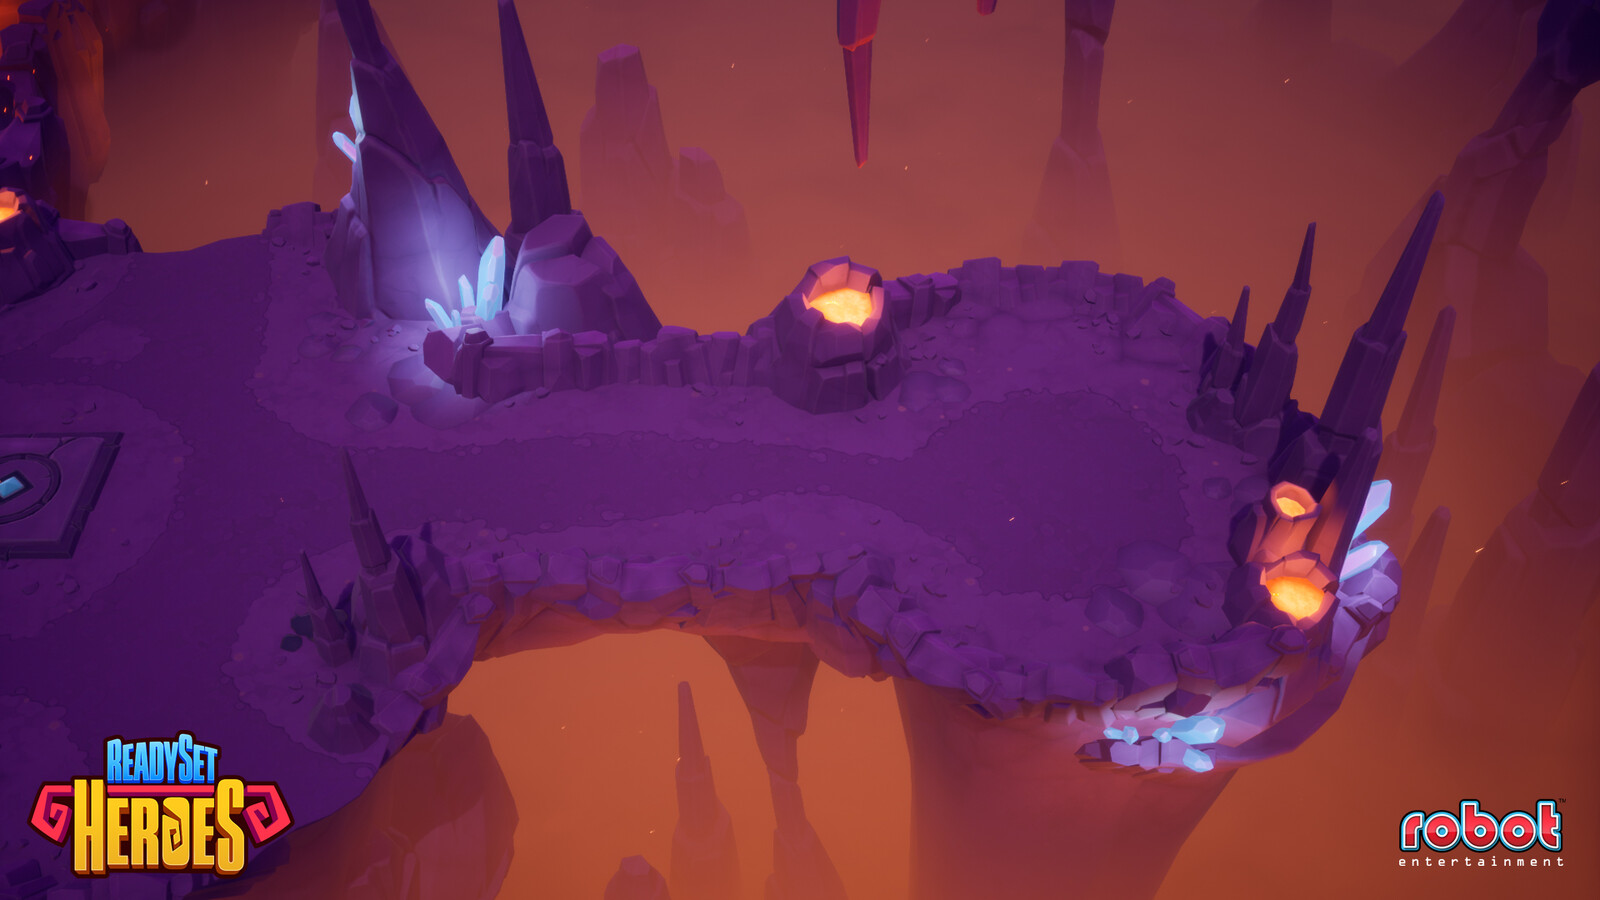 Lava cave art set - Created terrain materials and decals, modeled and textured the crystals, and built out levels.